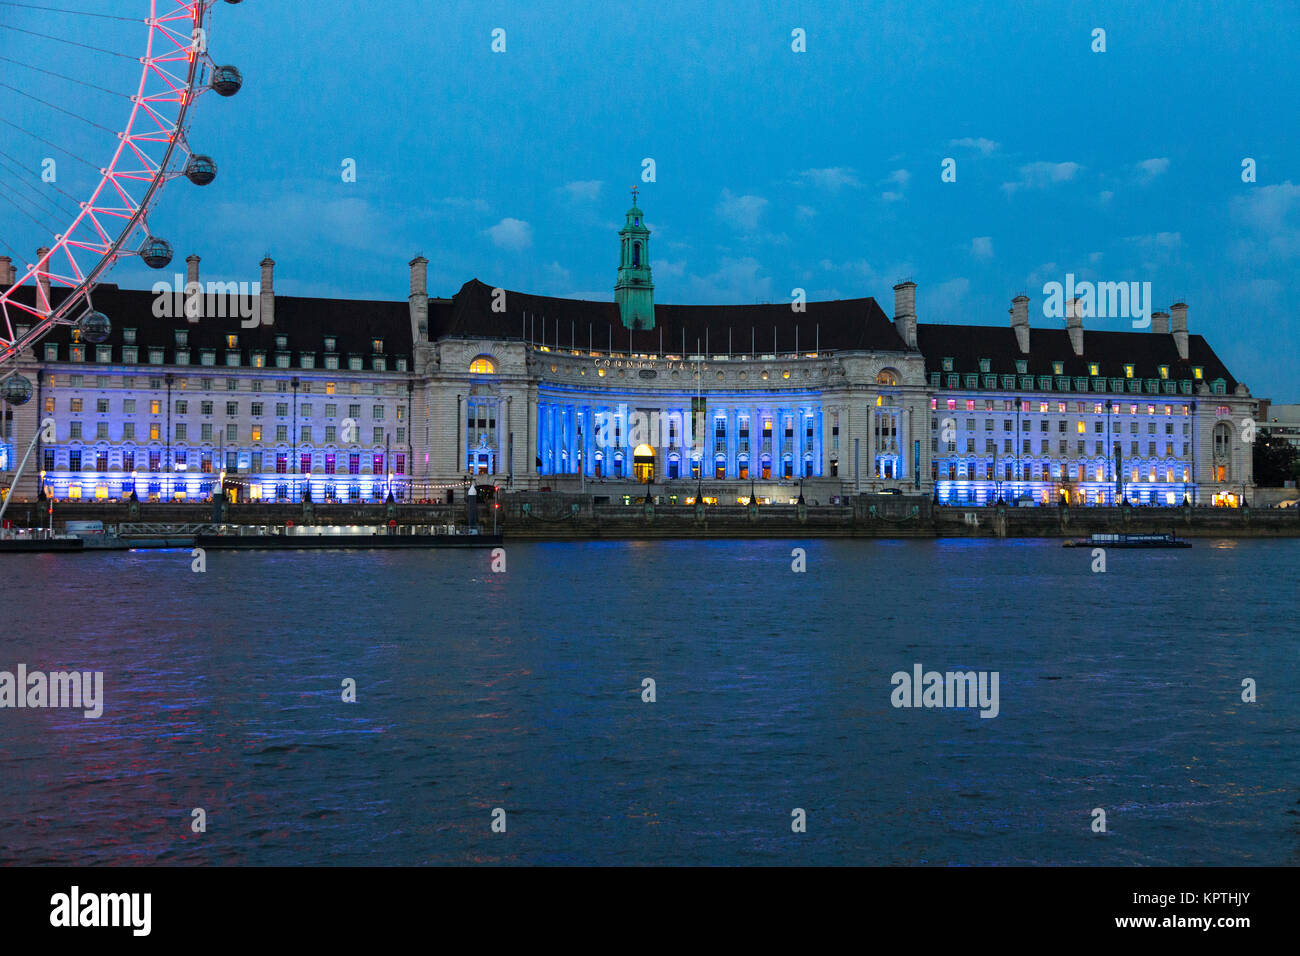 The County Hall building at night, home to the Sea Life London Aquarium, London, UK - Stock Image